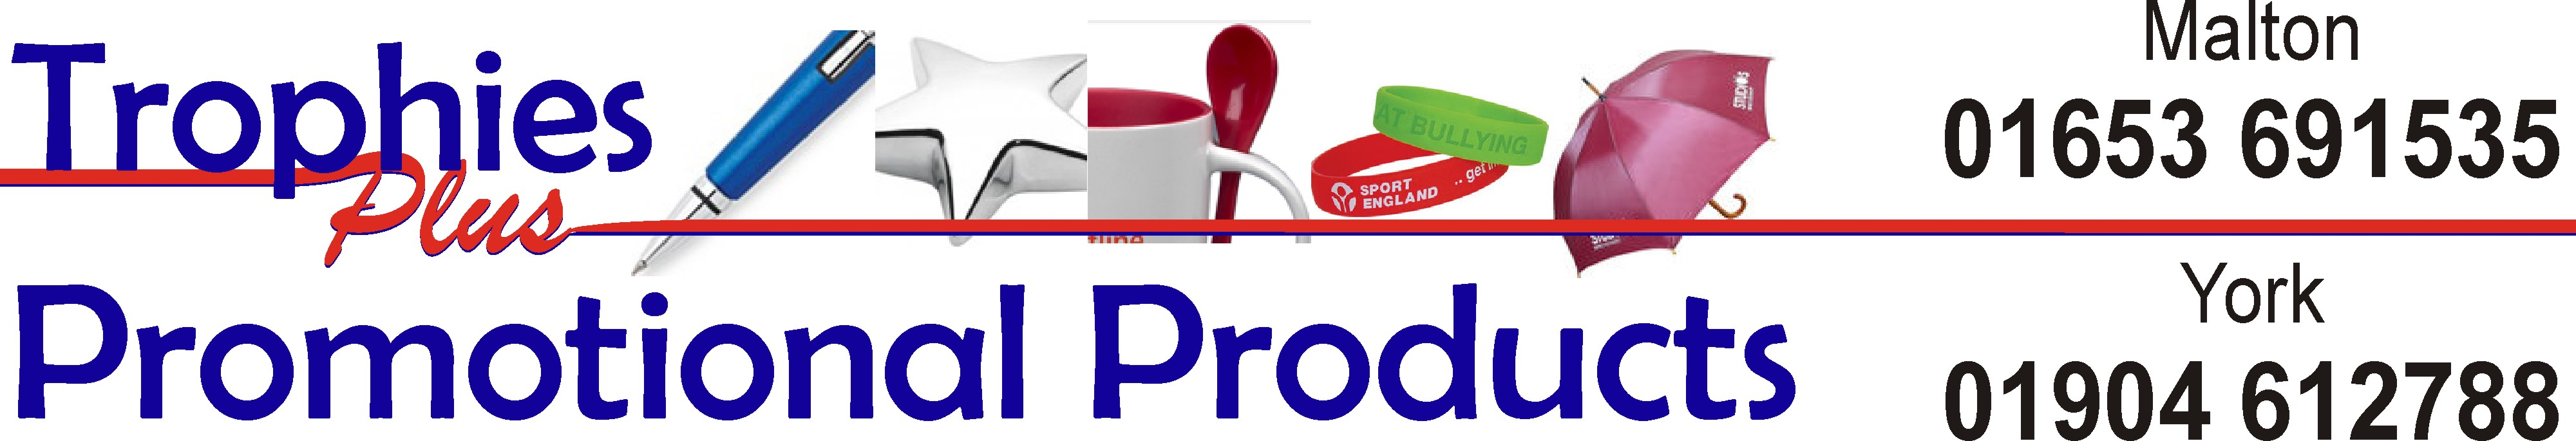 printed promotional items and business gifts